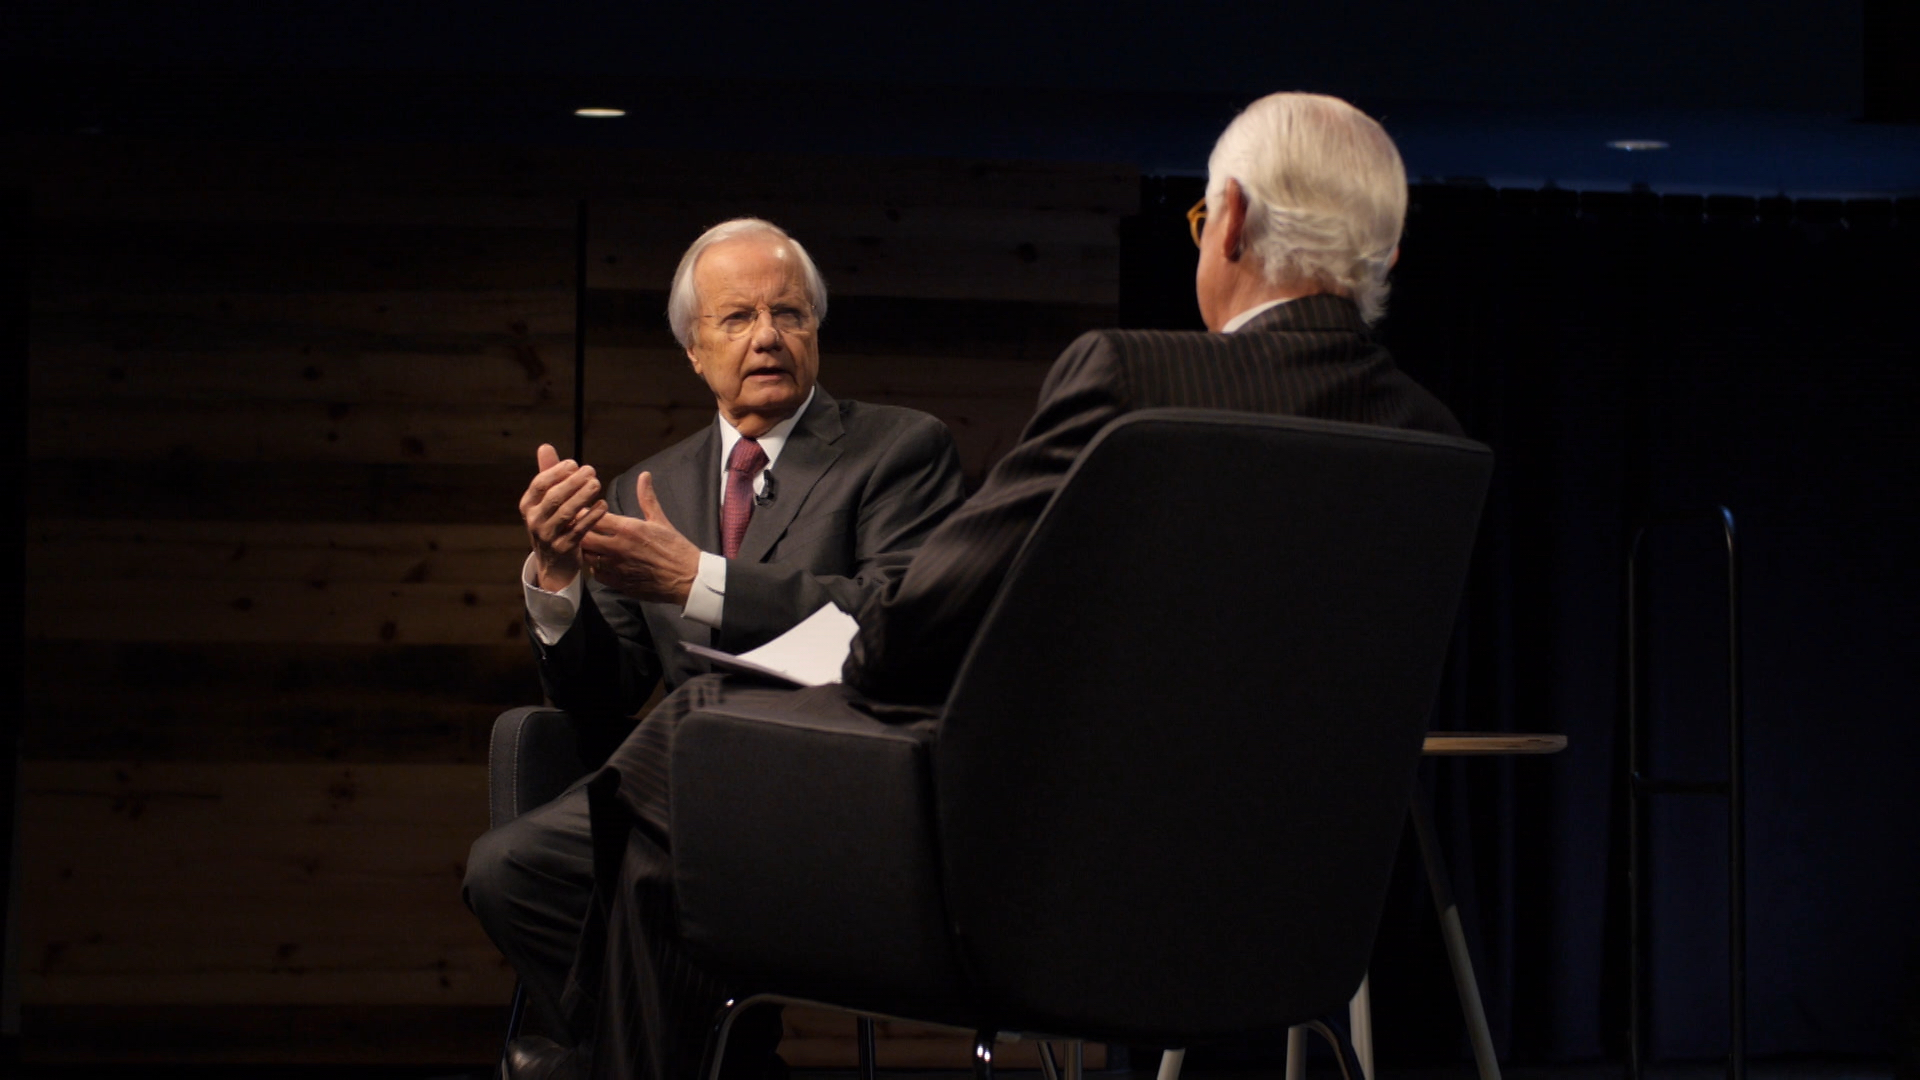 A Conversation with Bill Moyers